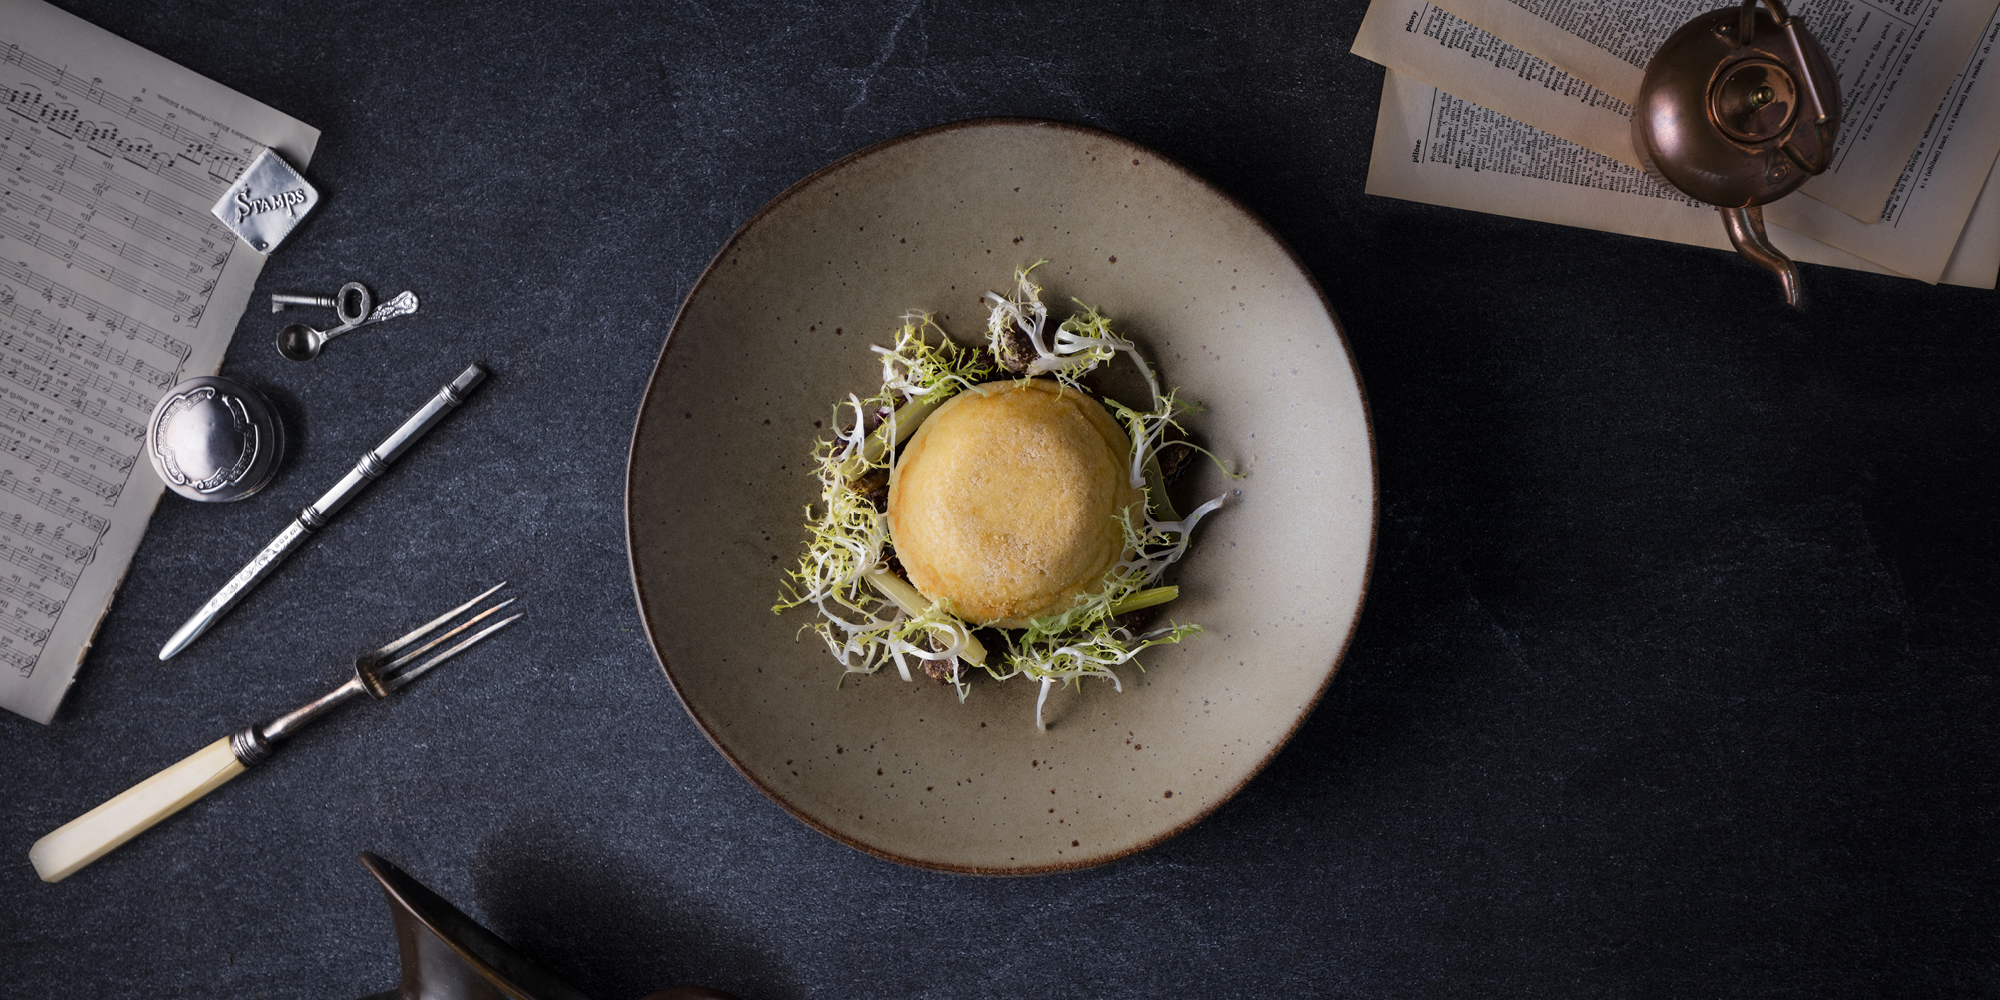 The Grahamston I Twice Baked Isle of Mull Cheddar Souffle served with braised celery, warm grape chutney, frizzy endive and roasted chestnuts